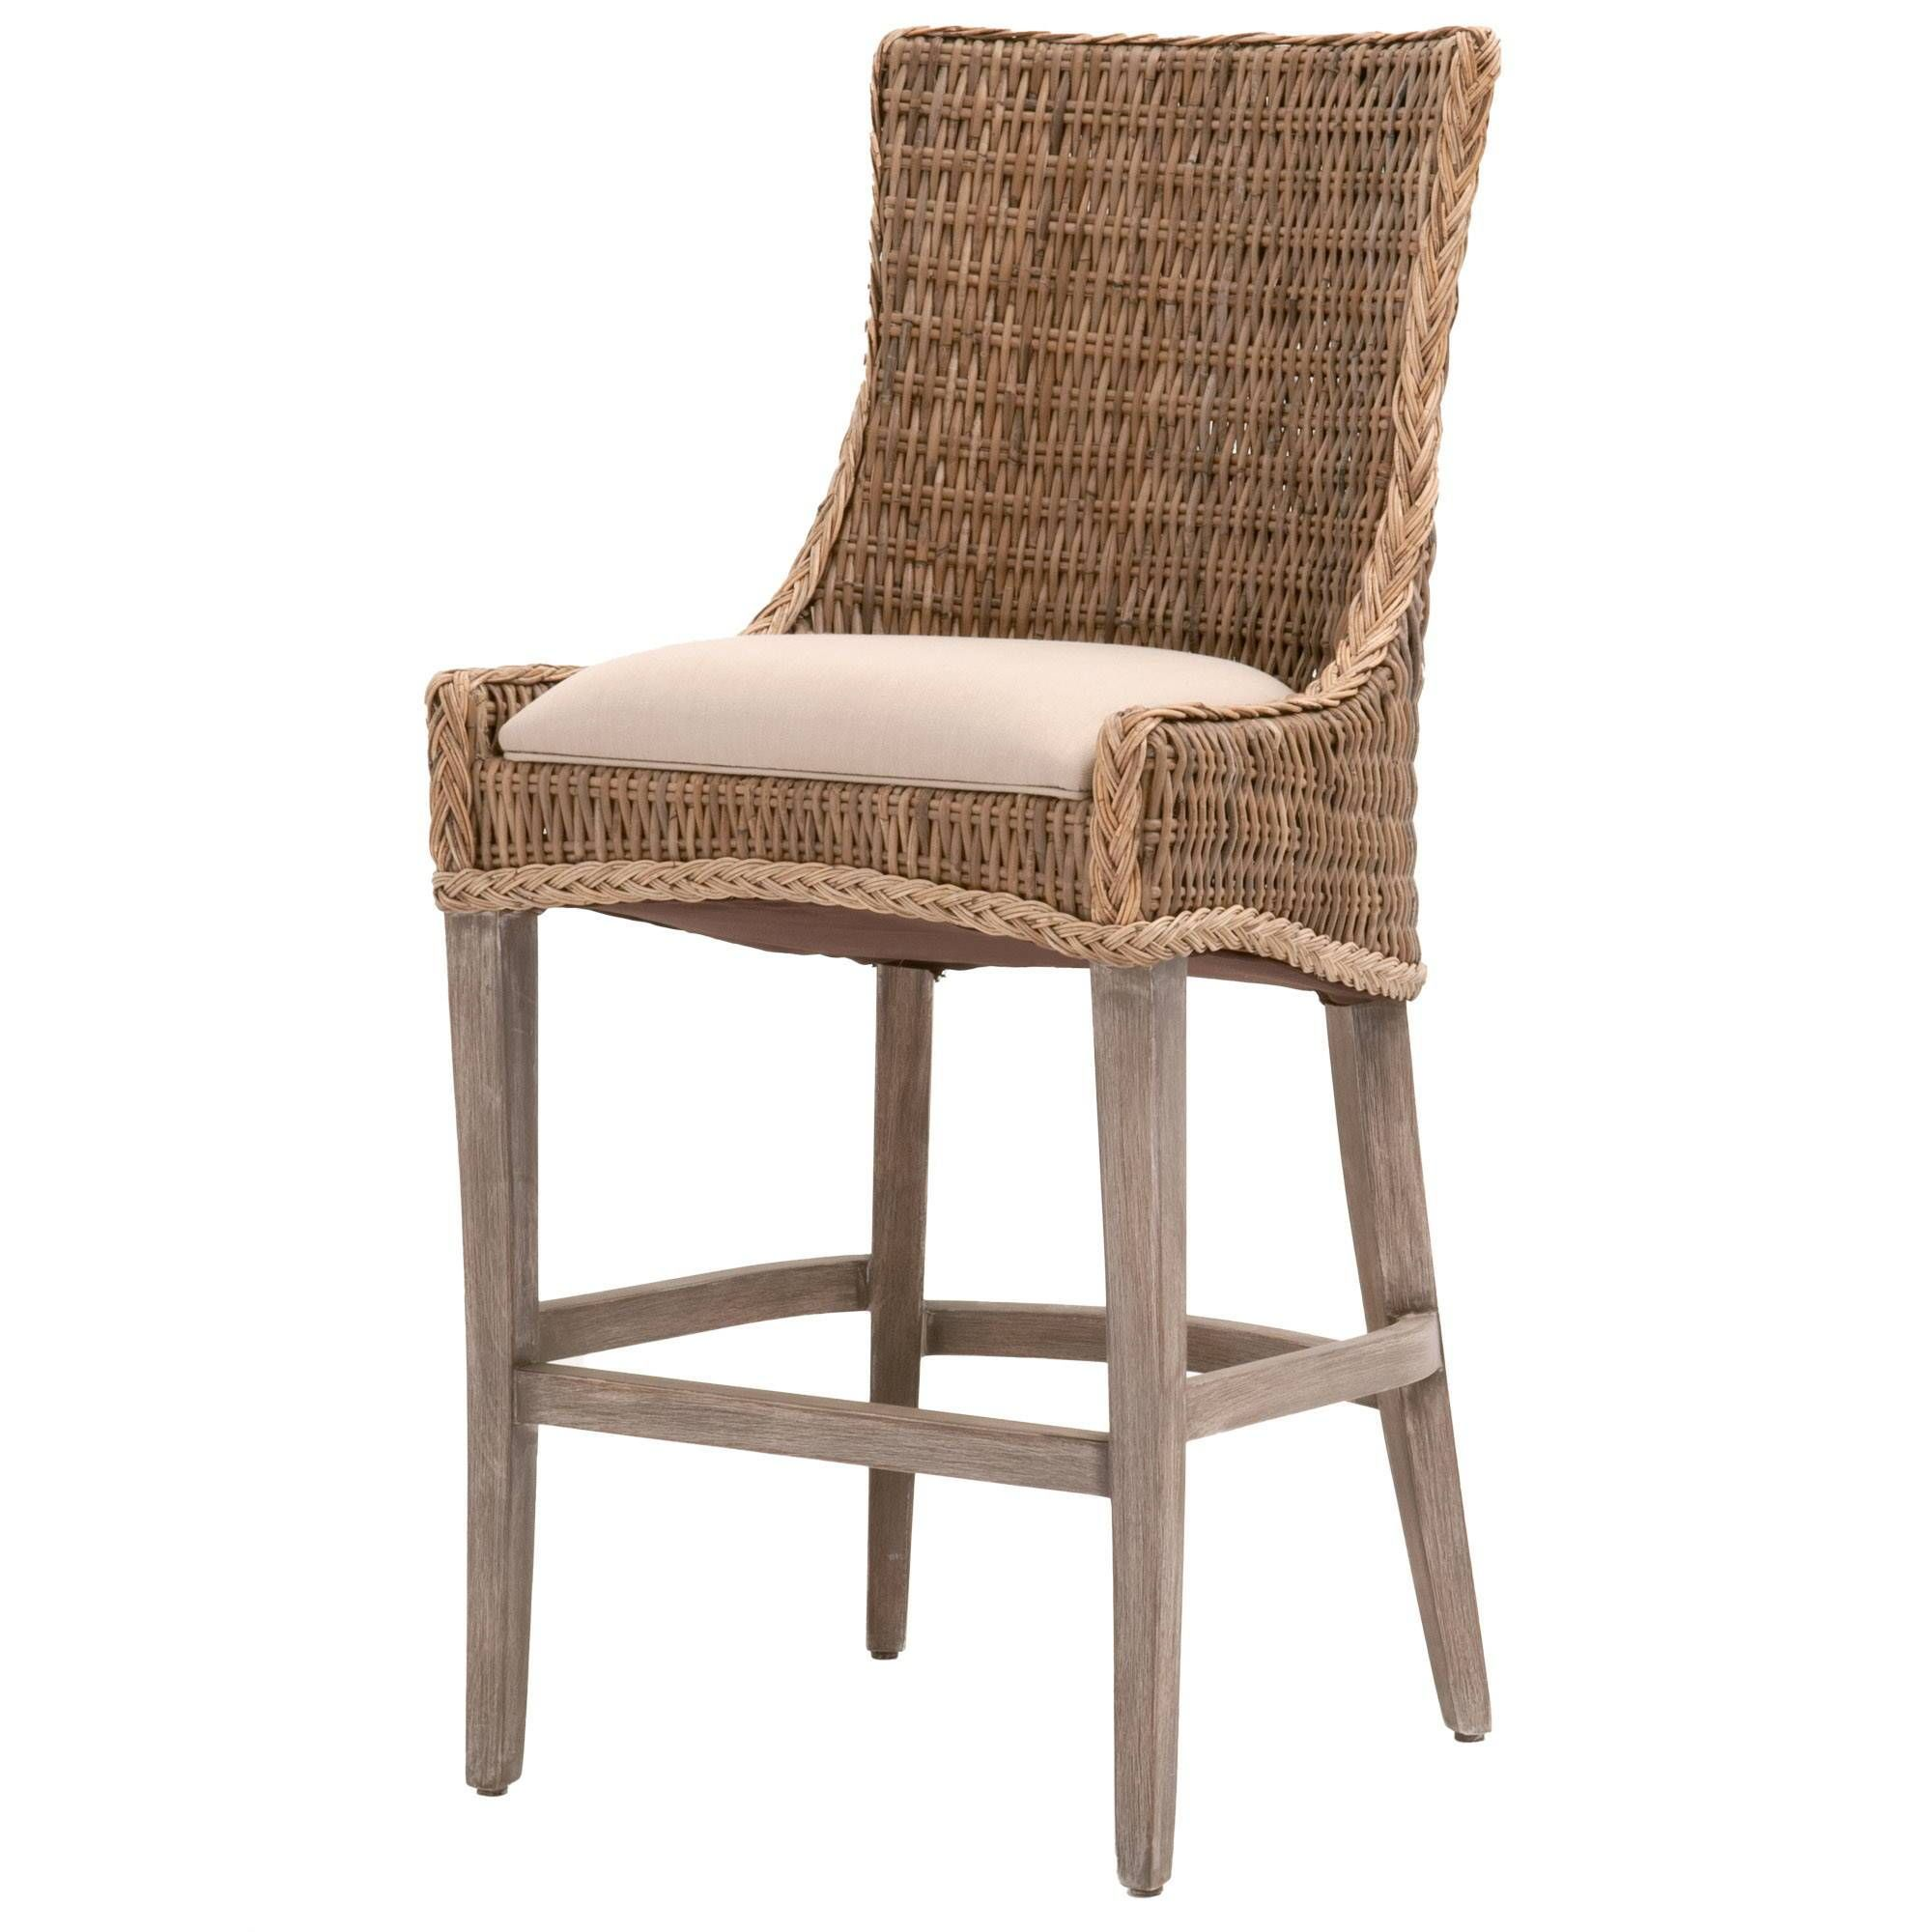 Greco Counter Or Bar Stool Set Of 2 In 2021 Wicker Bar Stools Rattan Bar Stools Transitional Style Bar Stools